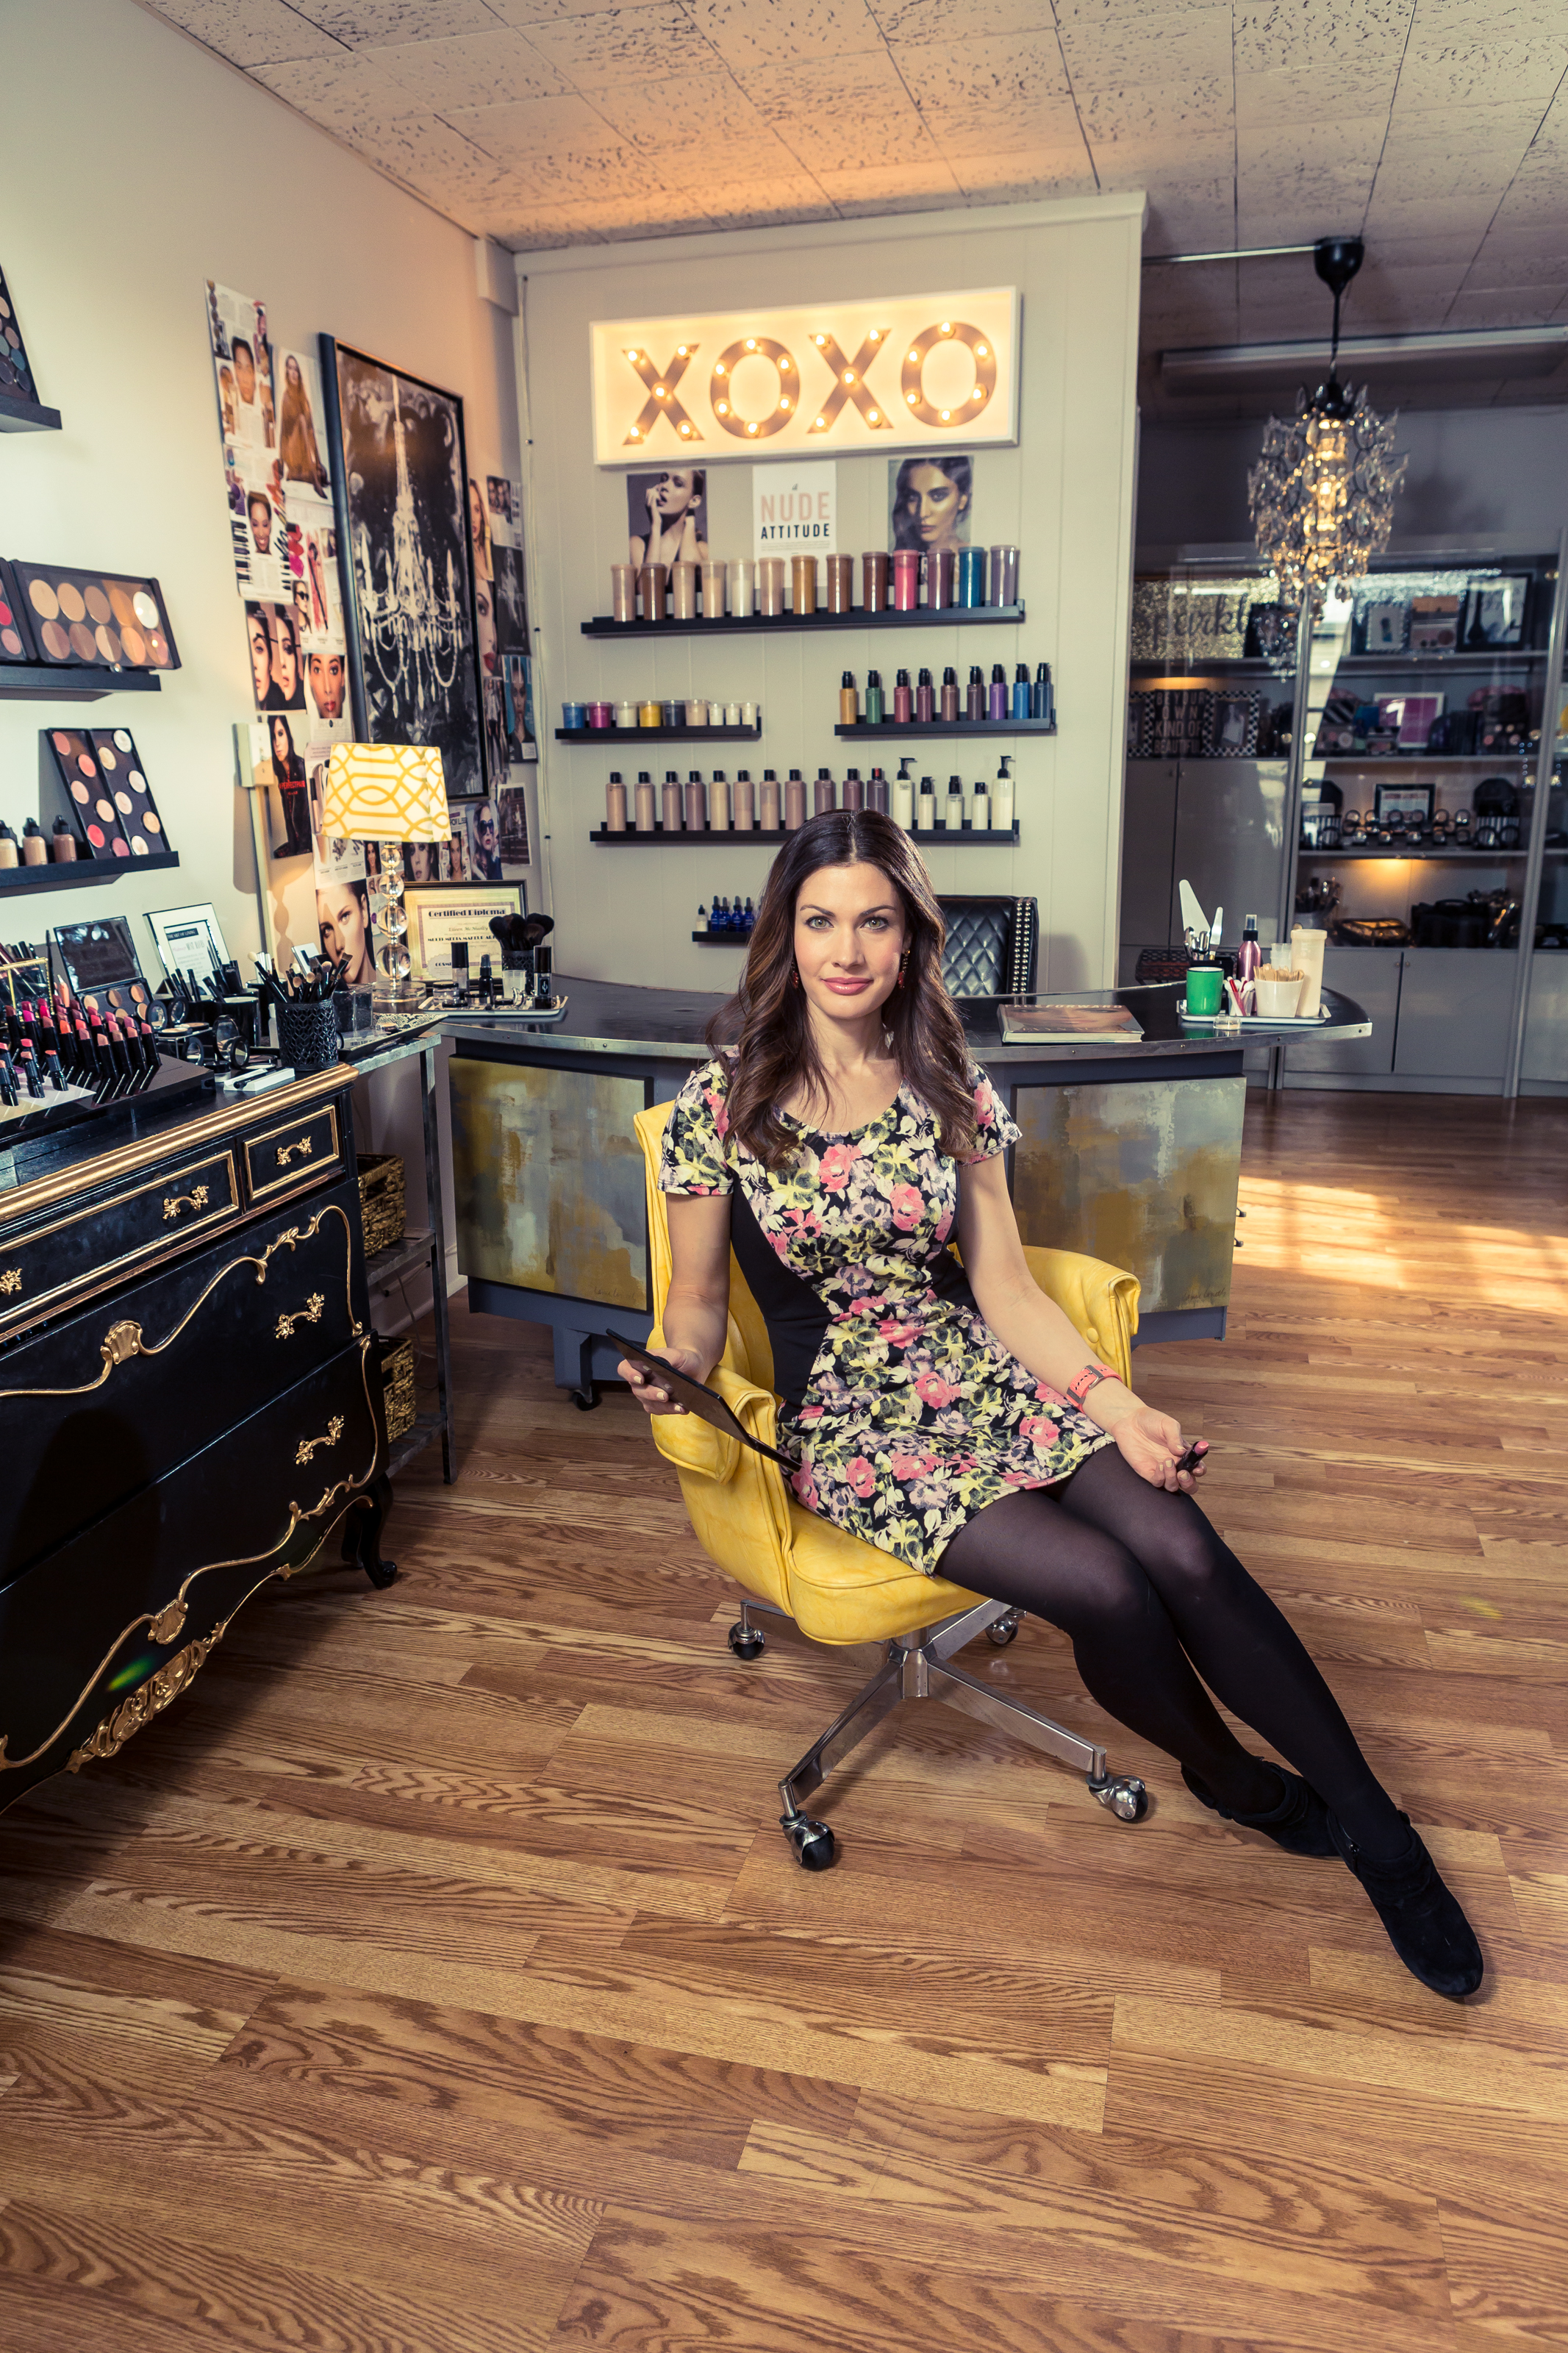 Editorial Photography | Chicago Portrait and Headshot Photographer